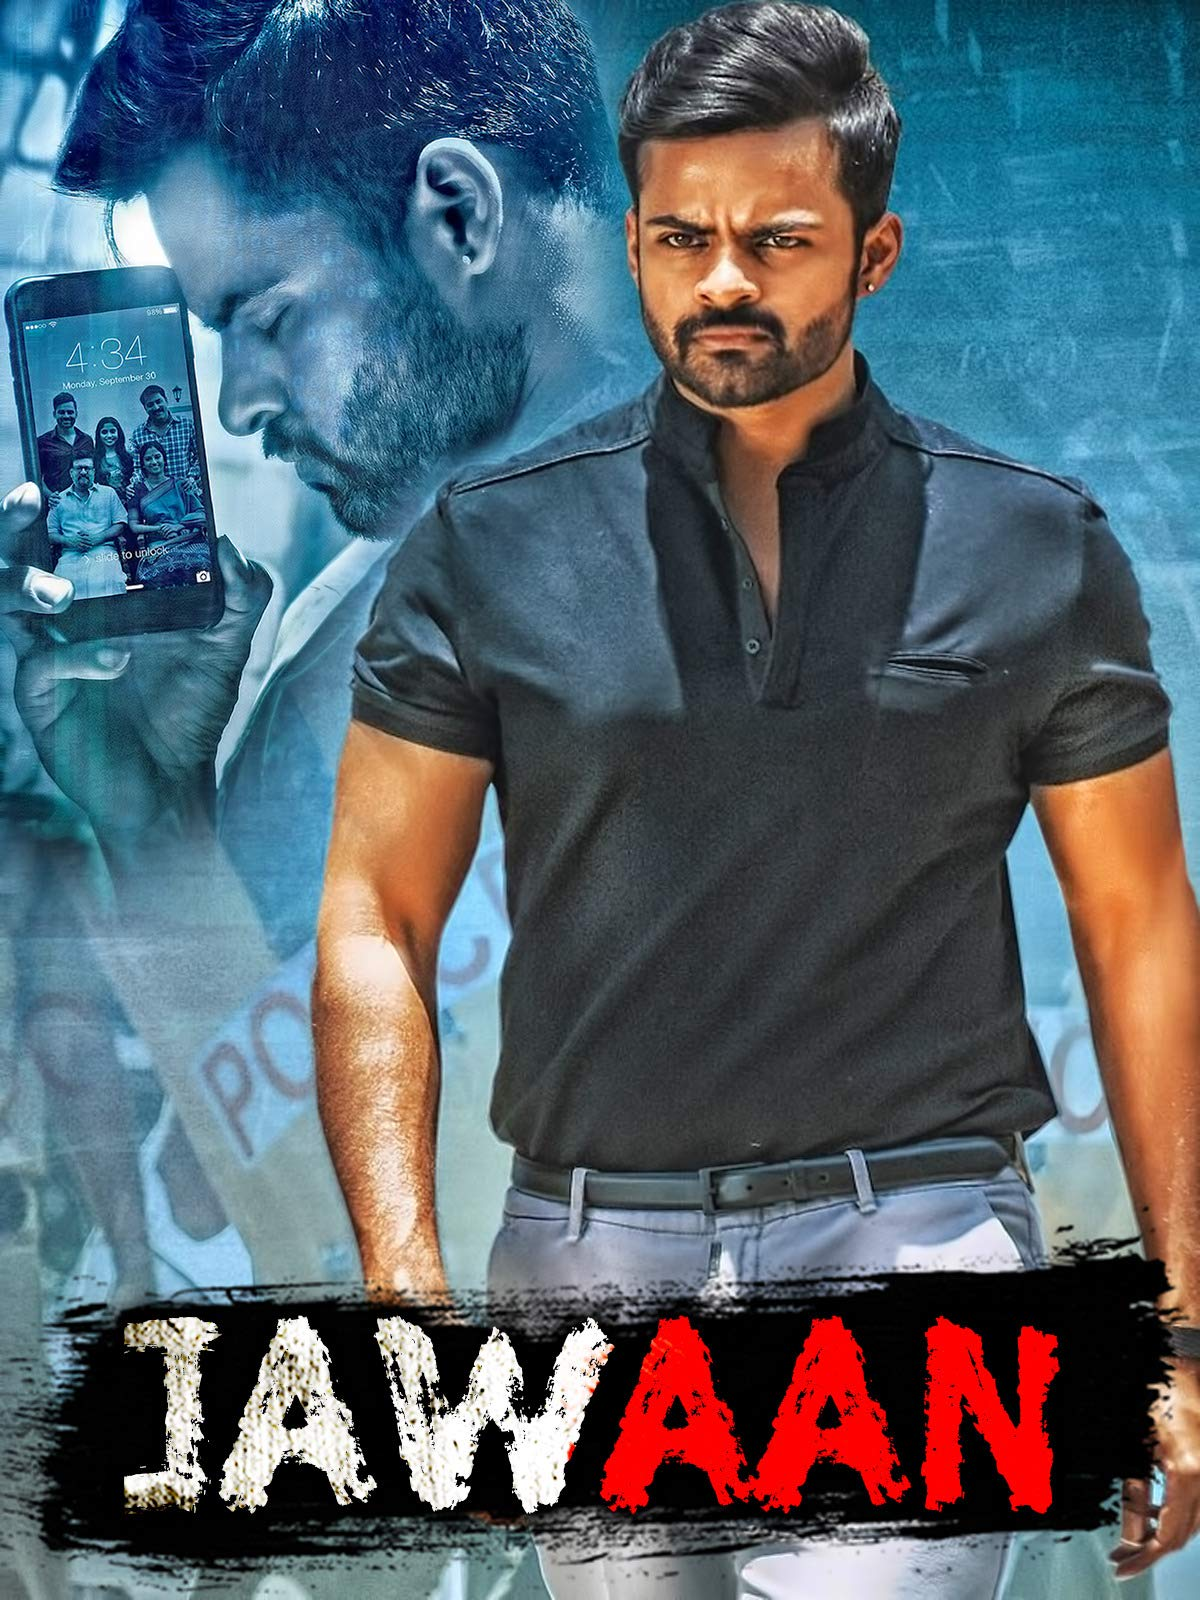 Jawaan (2021) Hindi Dubbed Movie HDRip 720p AAC